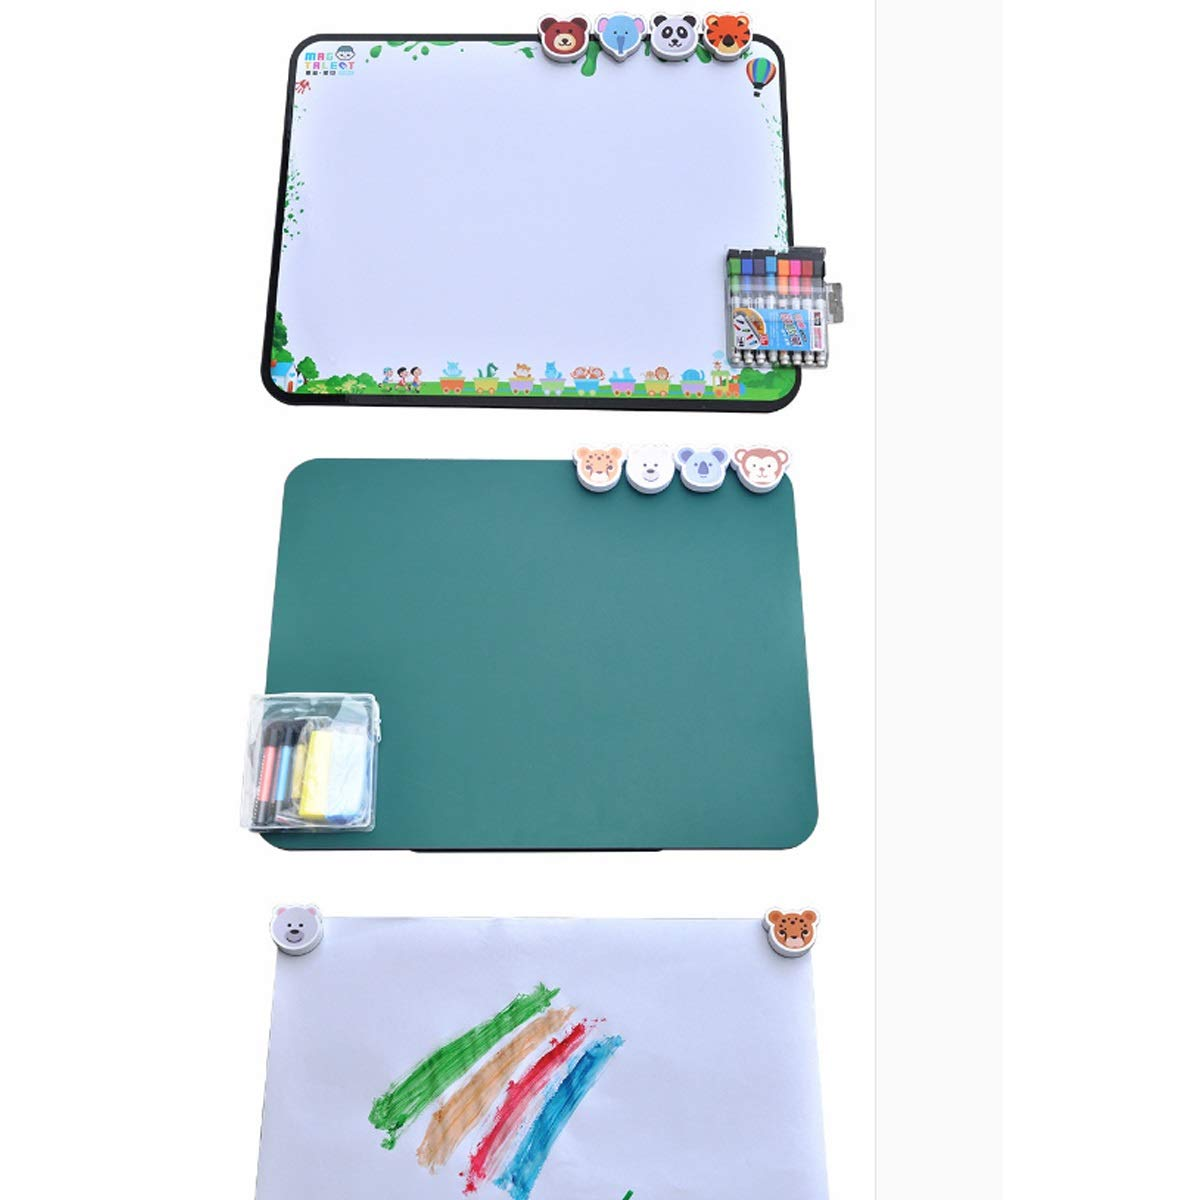 8haowenju Detachable Magnetic Multi-Function Portable Drawing Board, Writing Board, Note Board, Magnetic Photo Frame, Multi-Function Sketchpad (Size : F) by 8haowenju (Image #2)